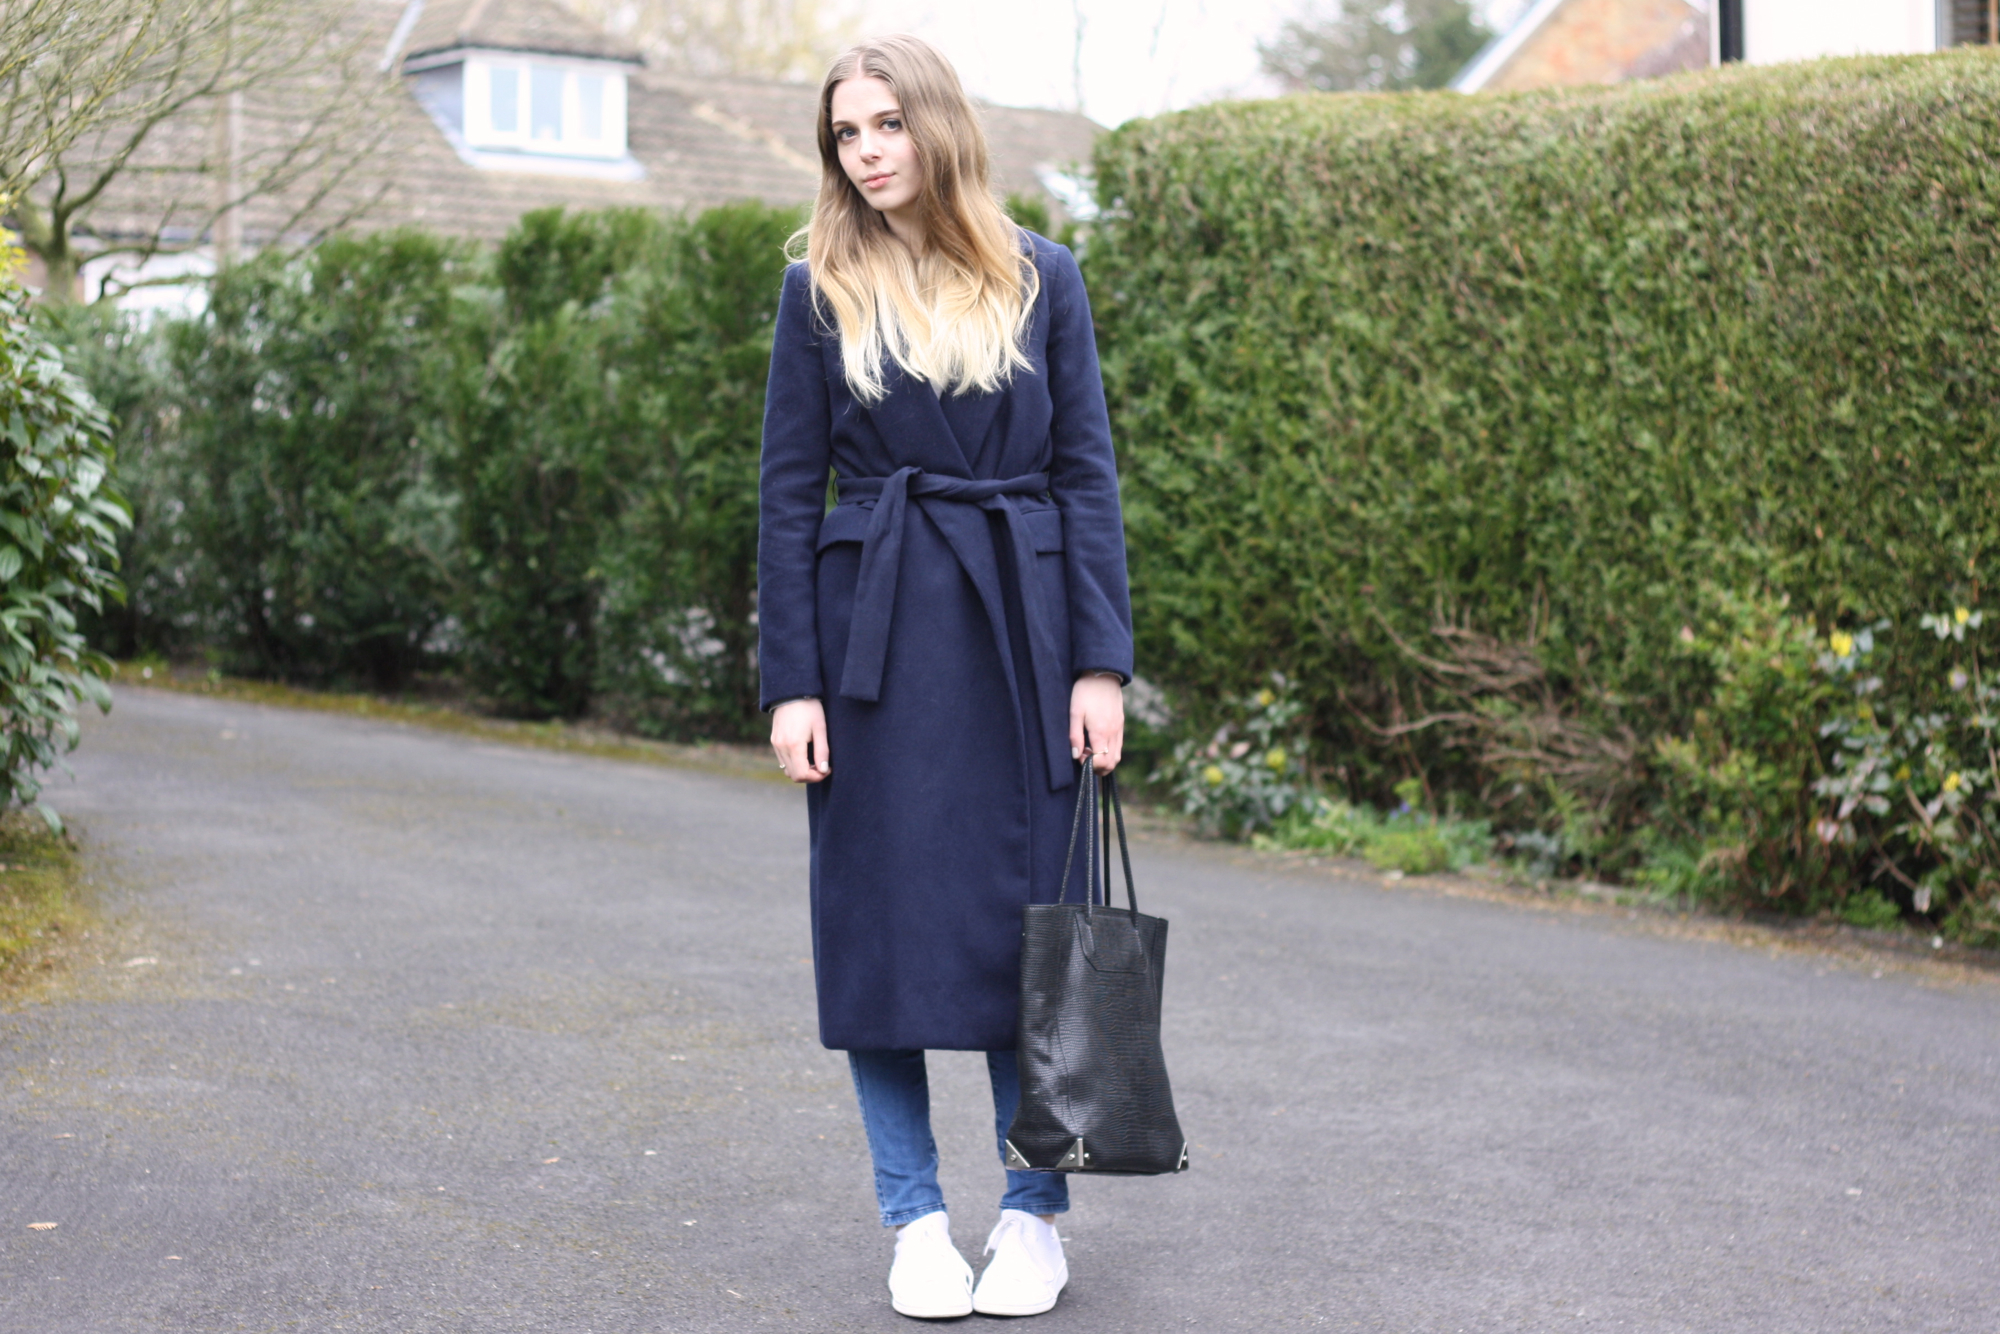 Topshop long navy coat